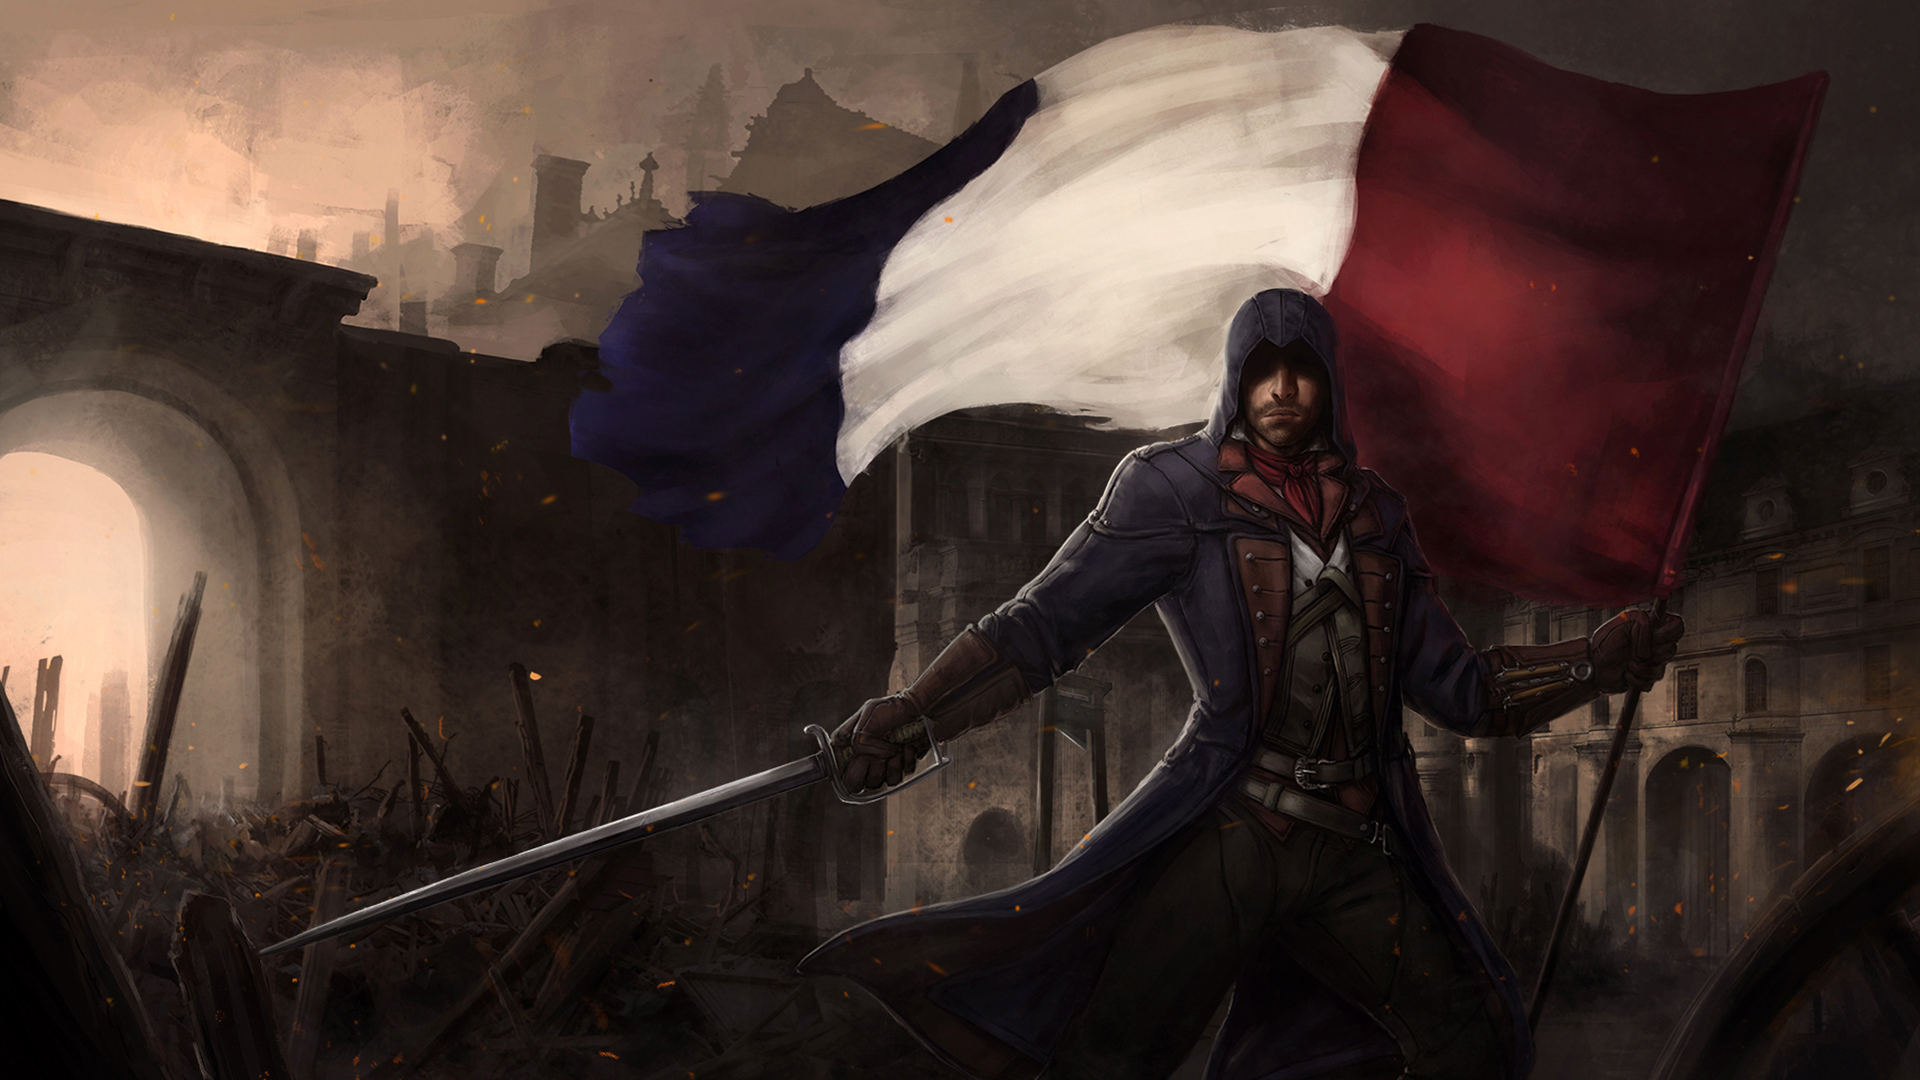 assassins-creed-unity-french-revolution-flag-1920x1080